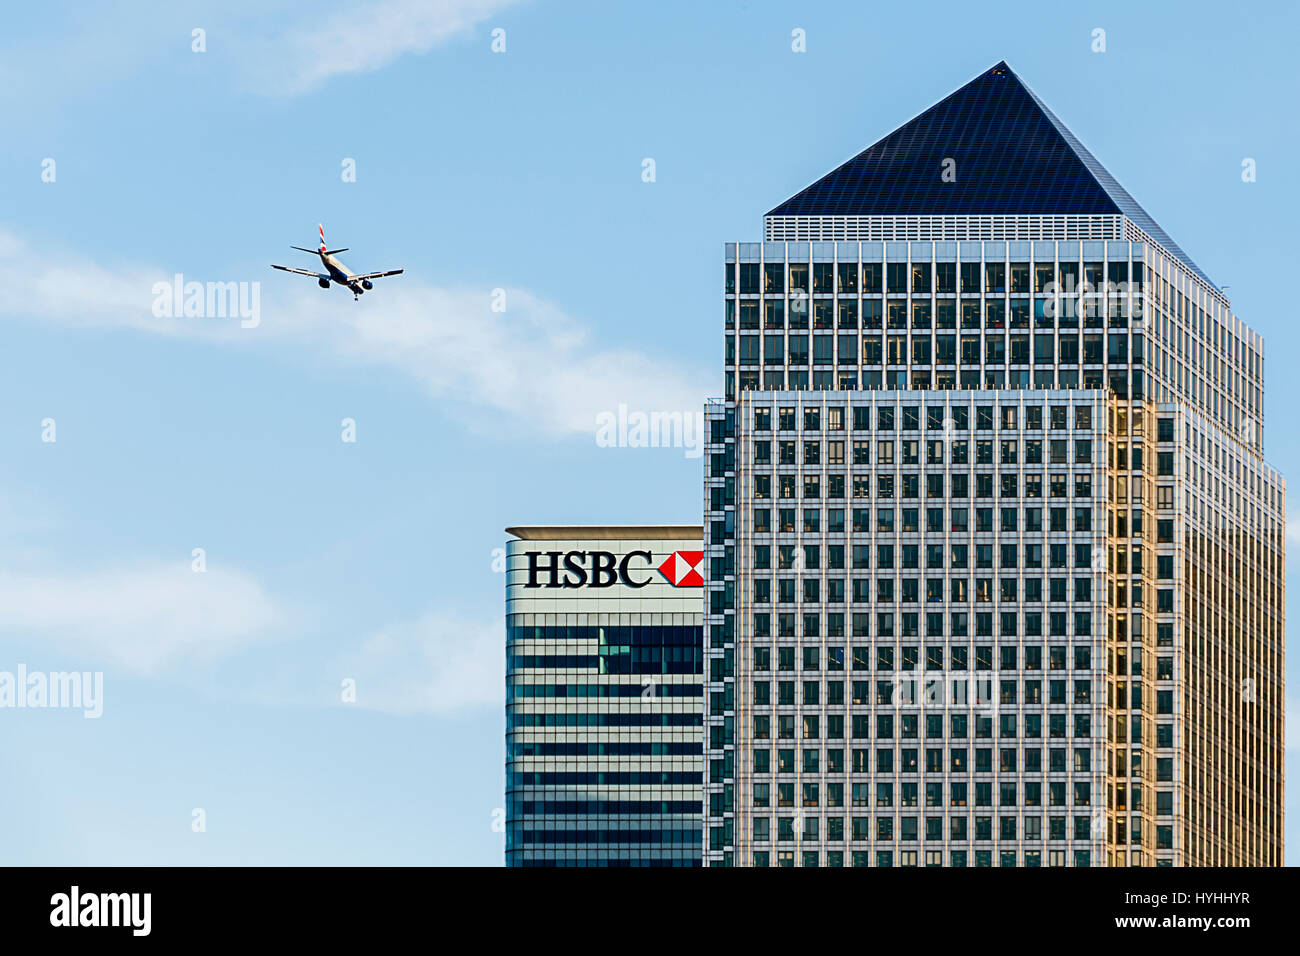 Aircraft Flying Over One Canada Square, Canary Wharf, London - Stock Image